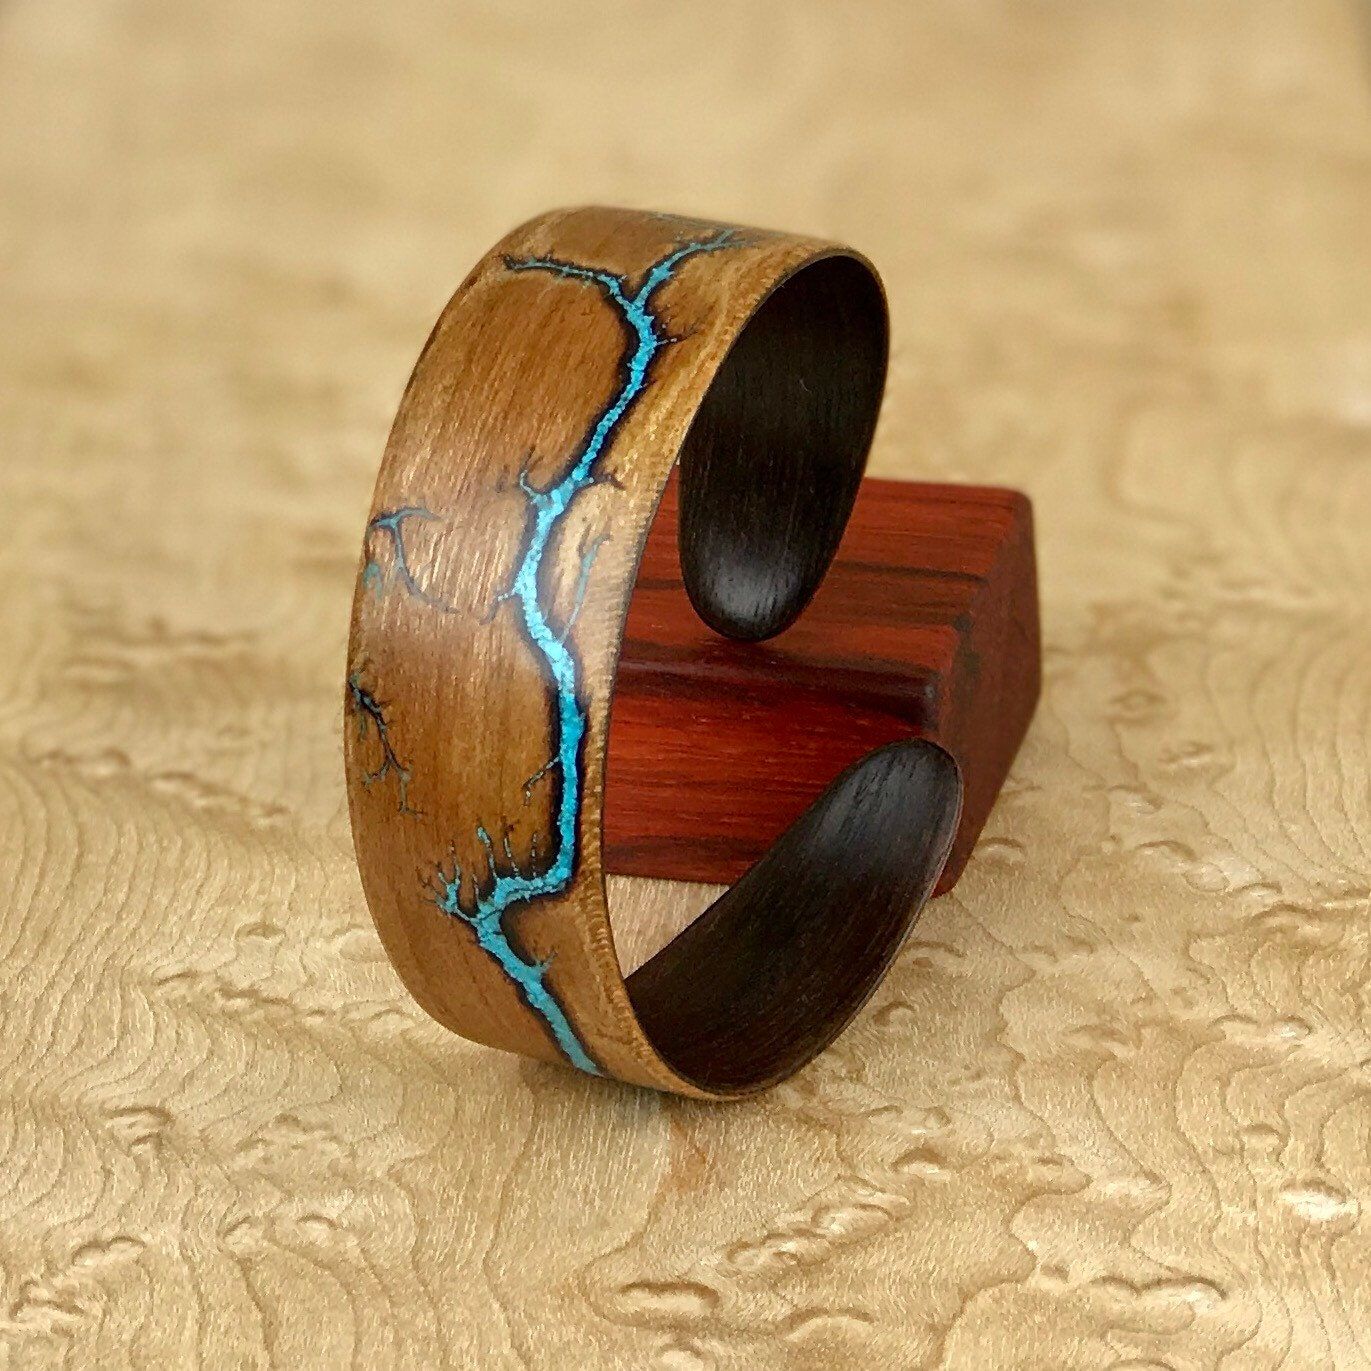 rings rustic amazakoue or wedding ring shop alternative bands boho wooden gift format handmade bentwood organic natural for engagement